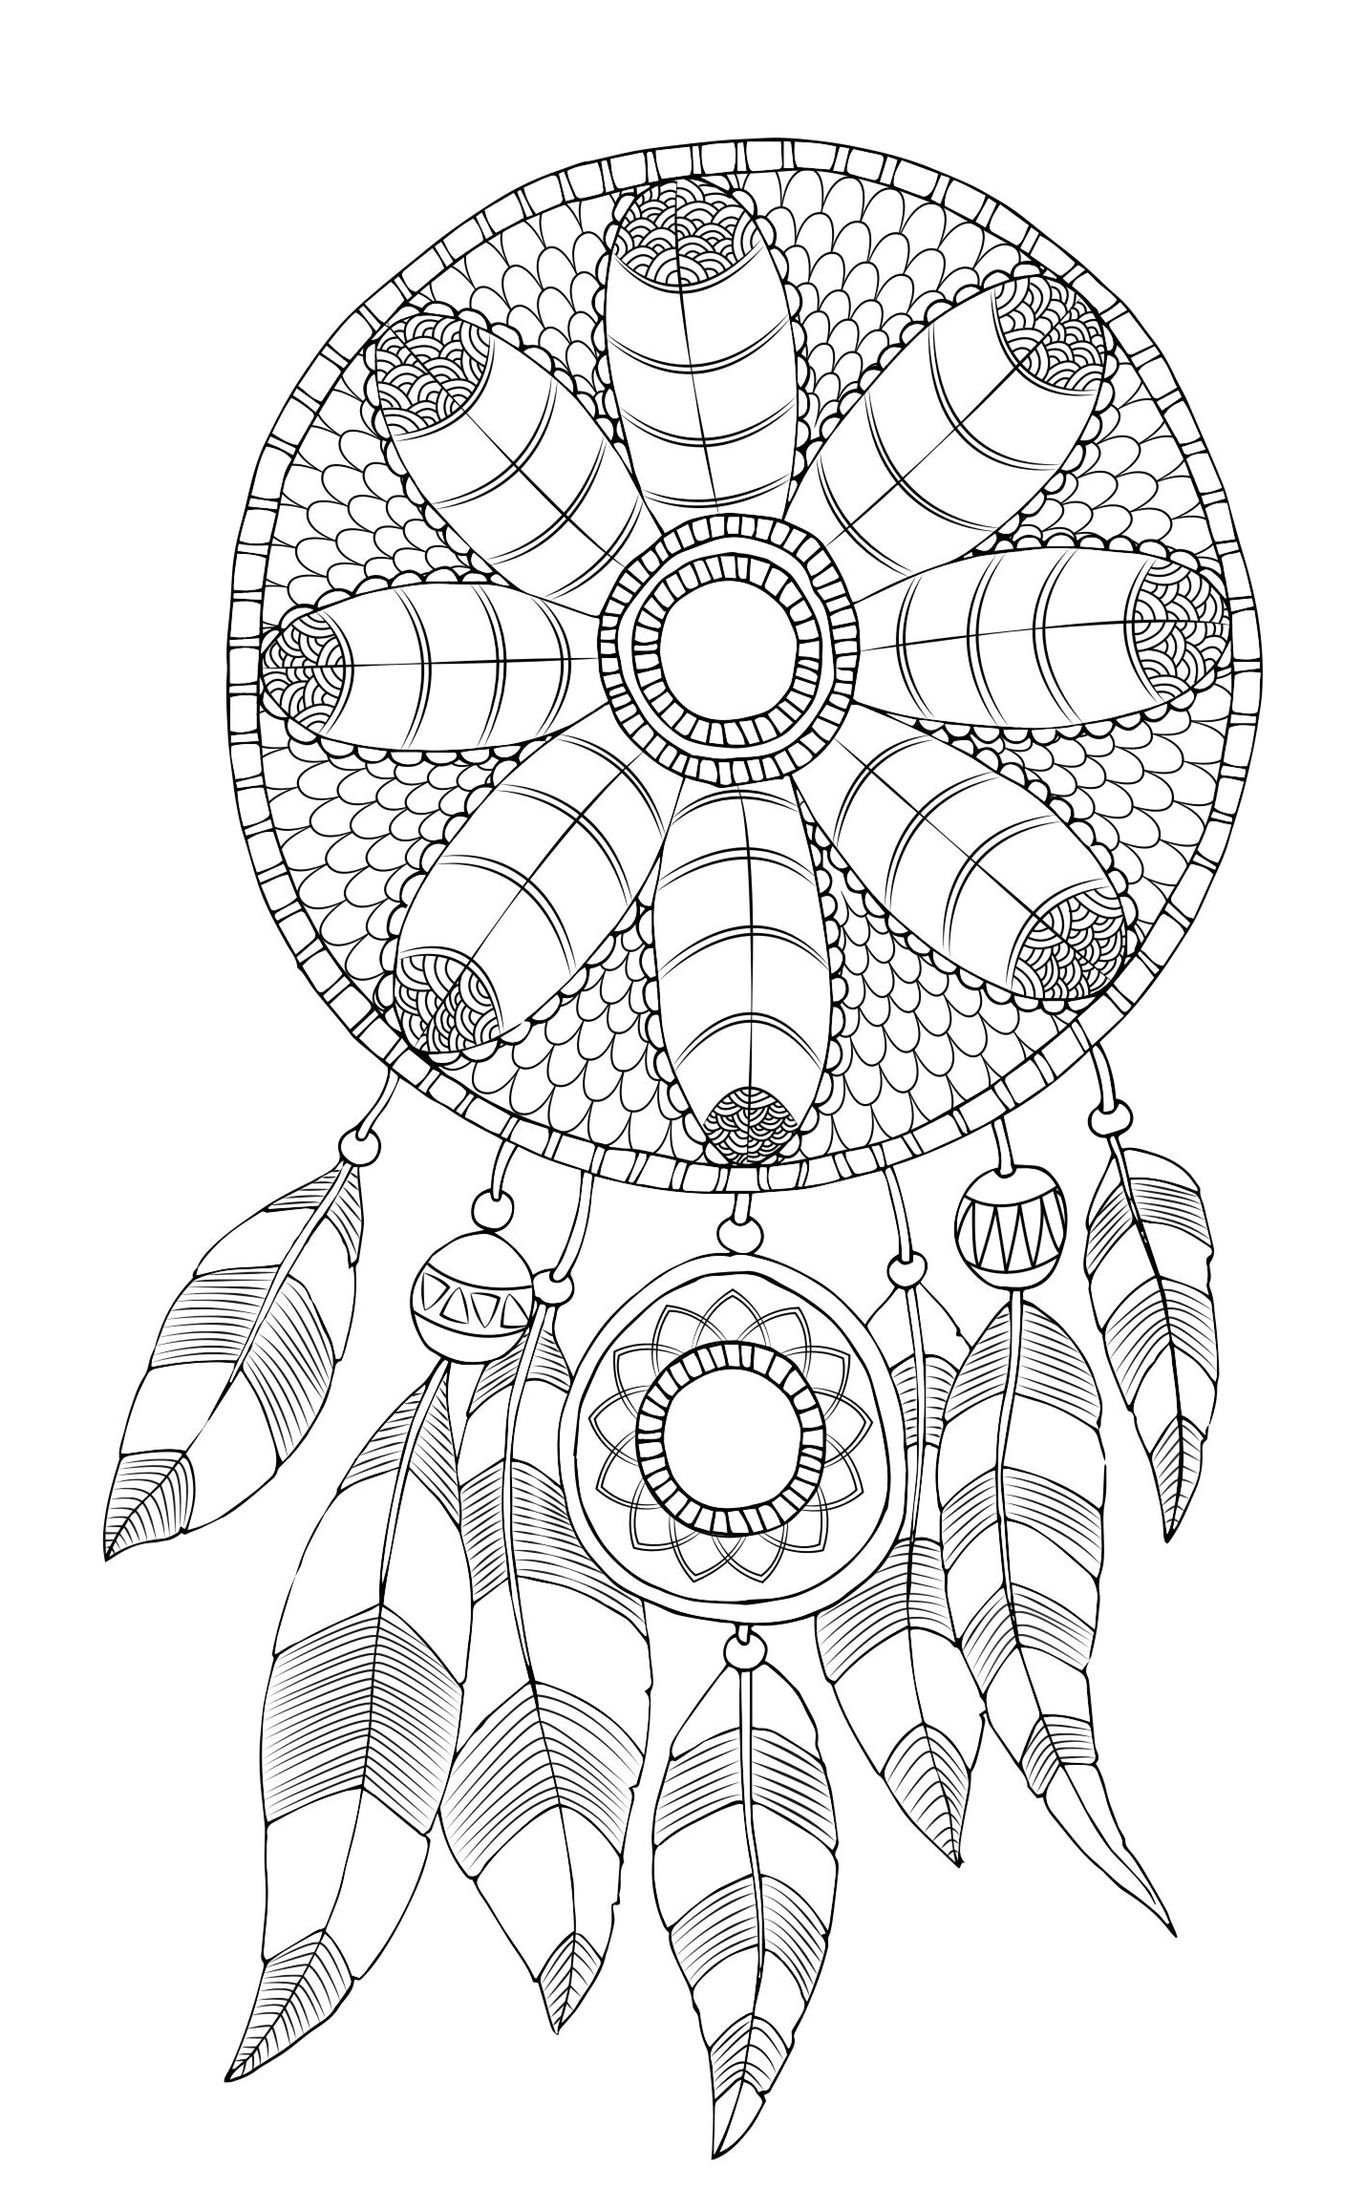 dream catcher coloring pages dream catcher coloring pages to download and print for free catcher pages coloring dream